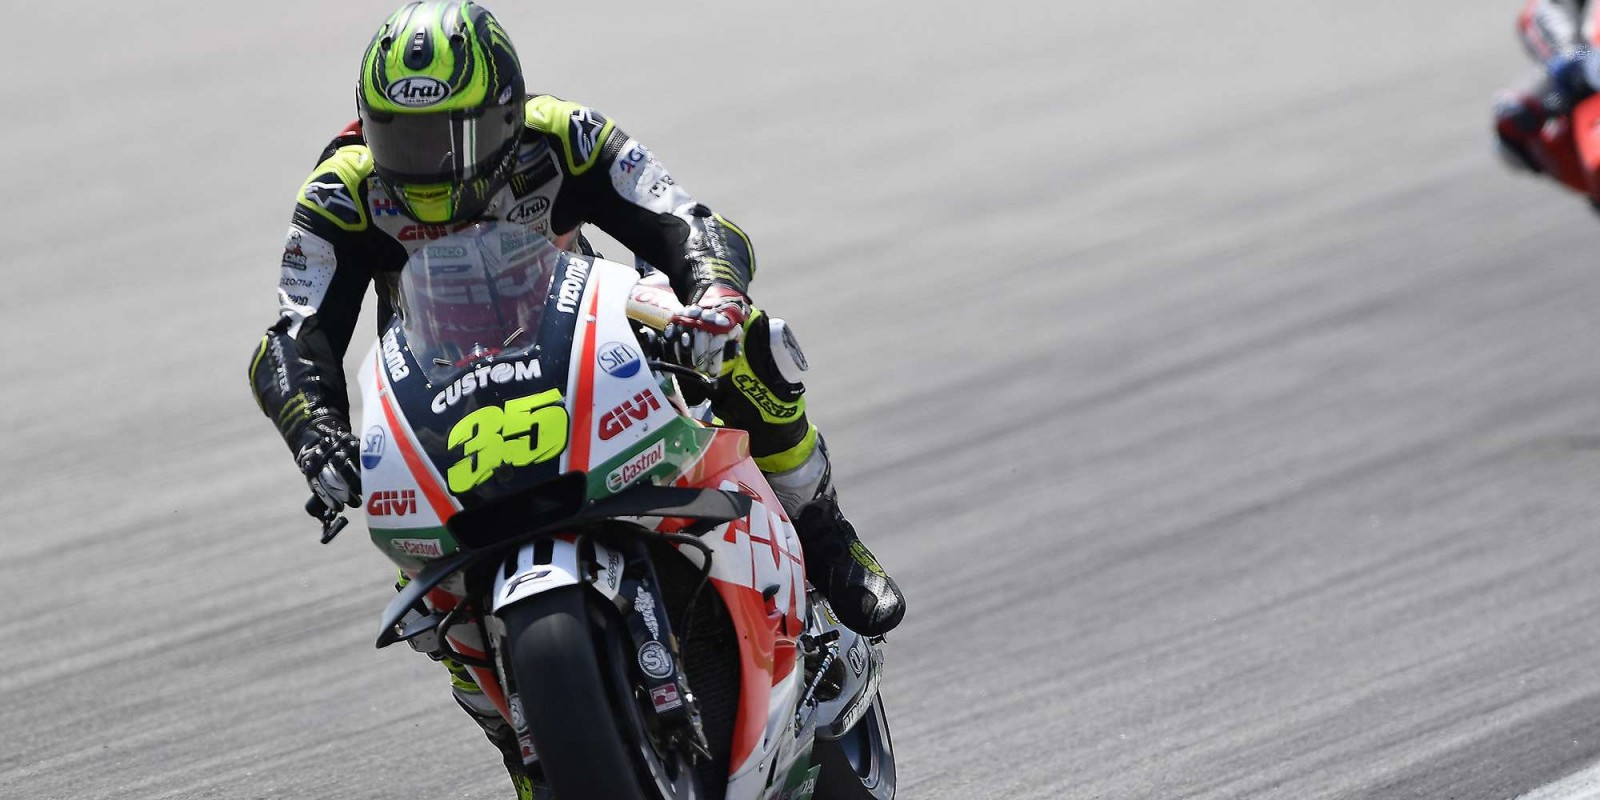 Cal Crutchlow at the 2018 GP of Germany